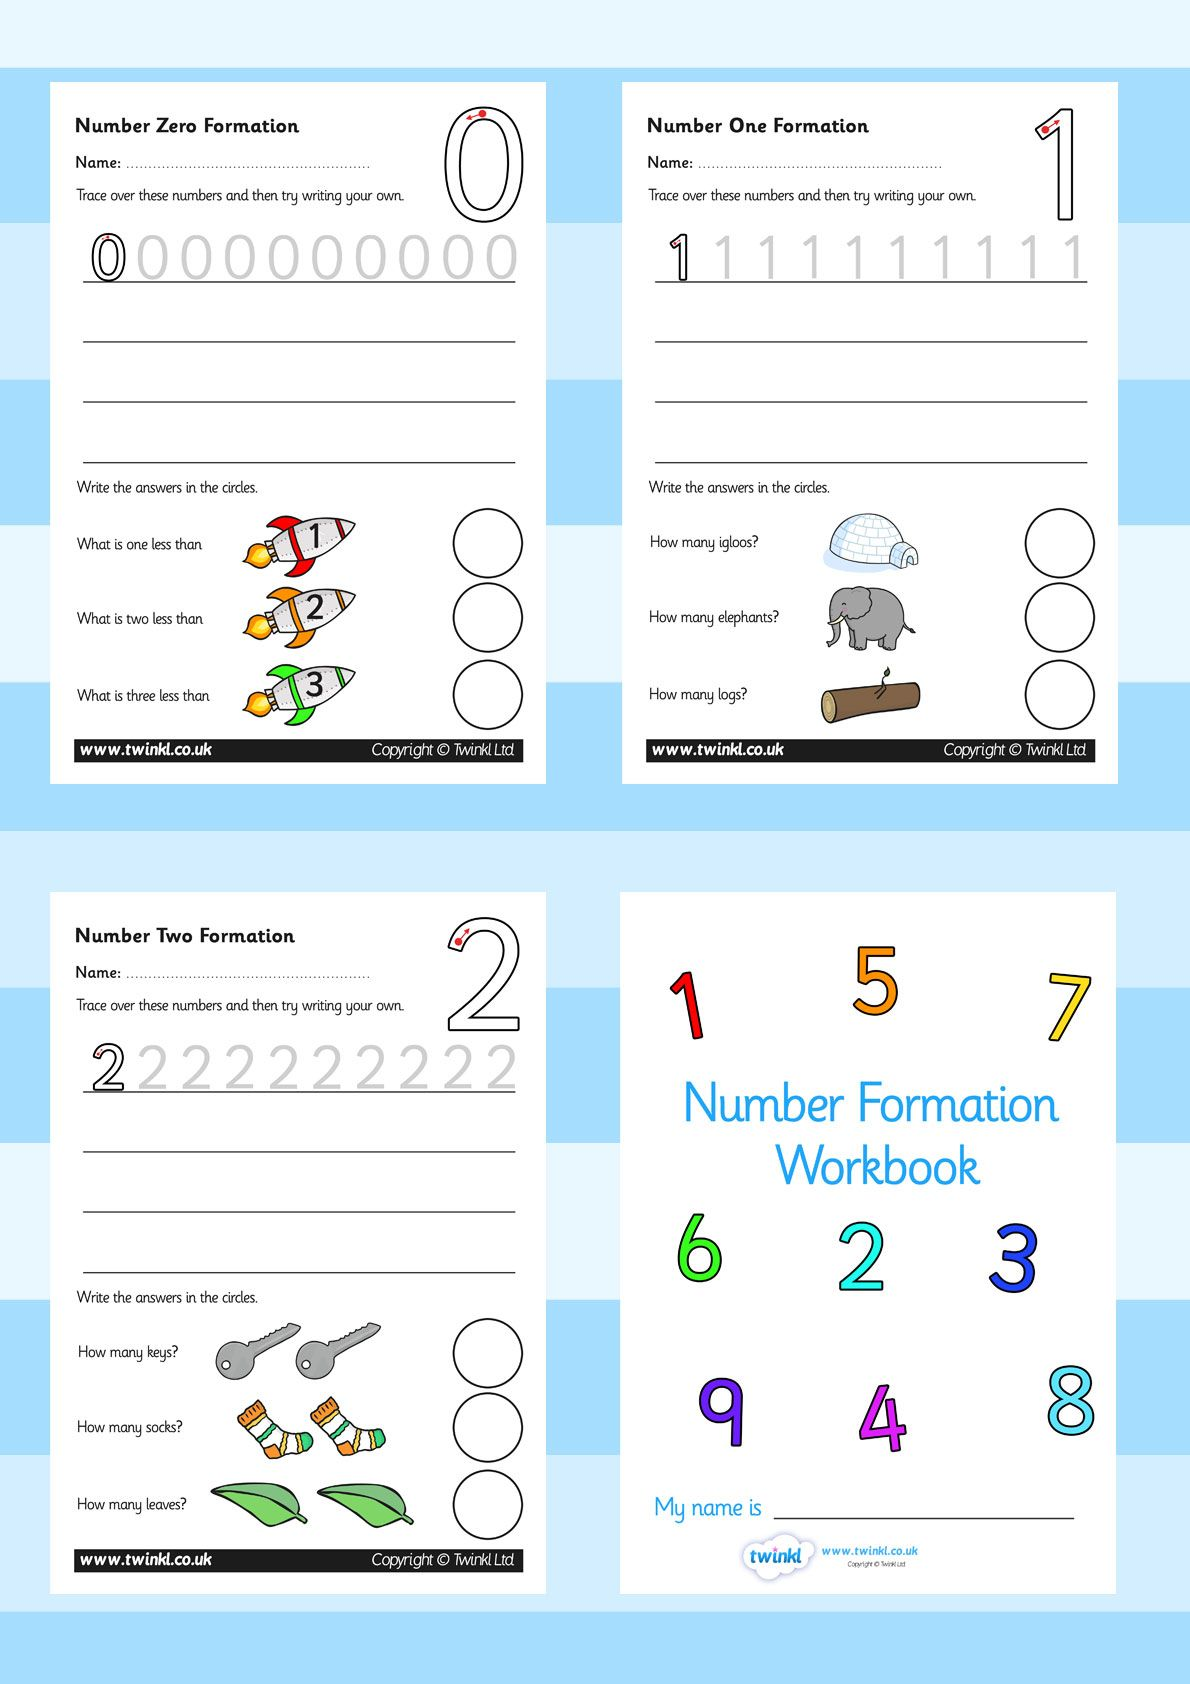 Twinkl Resources Number Formation Workbook Printable Resources